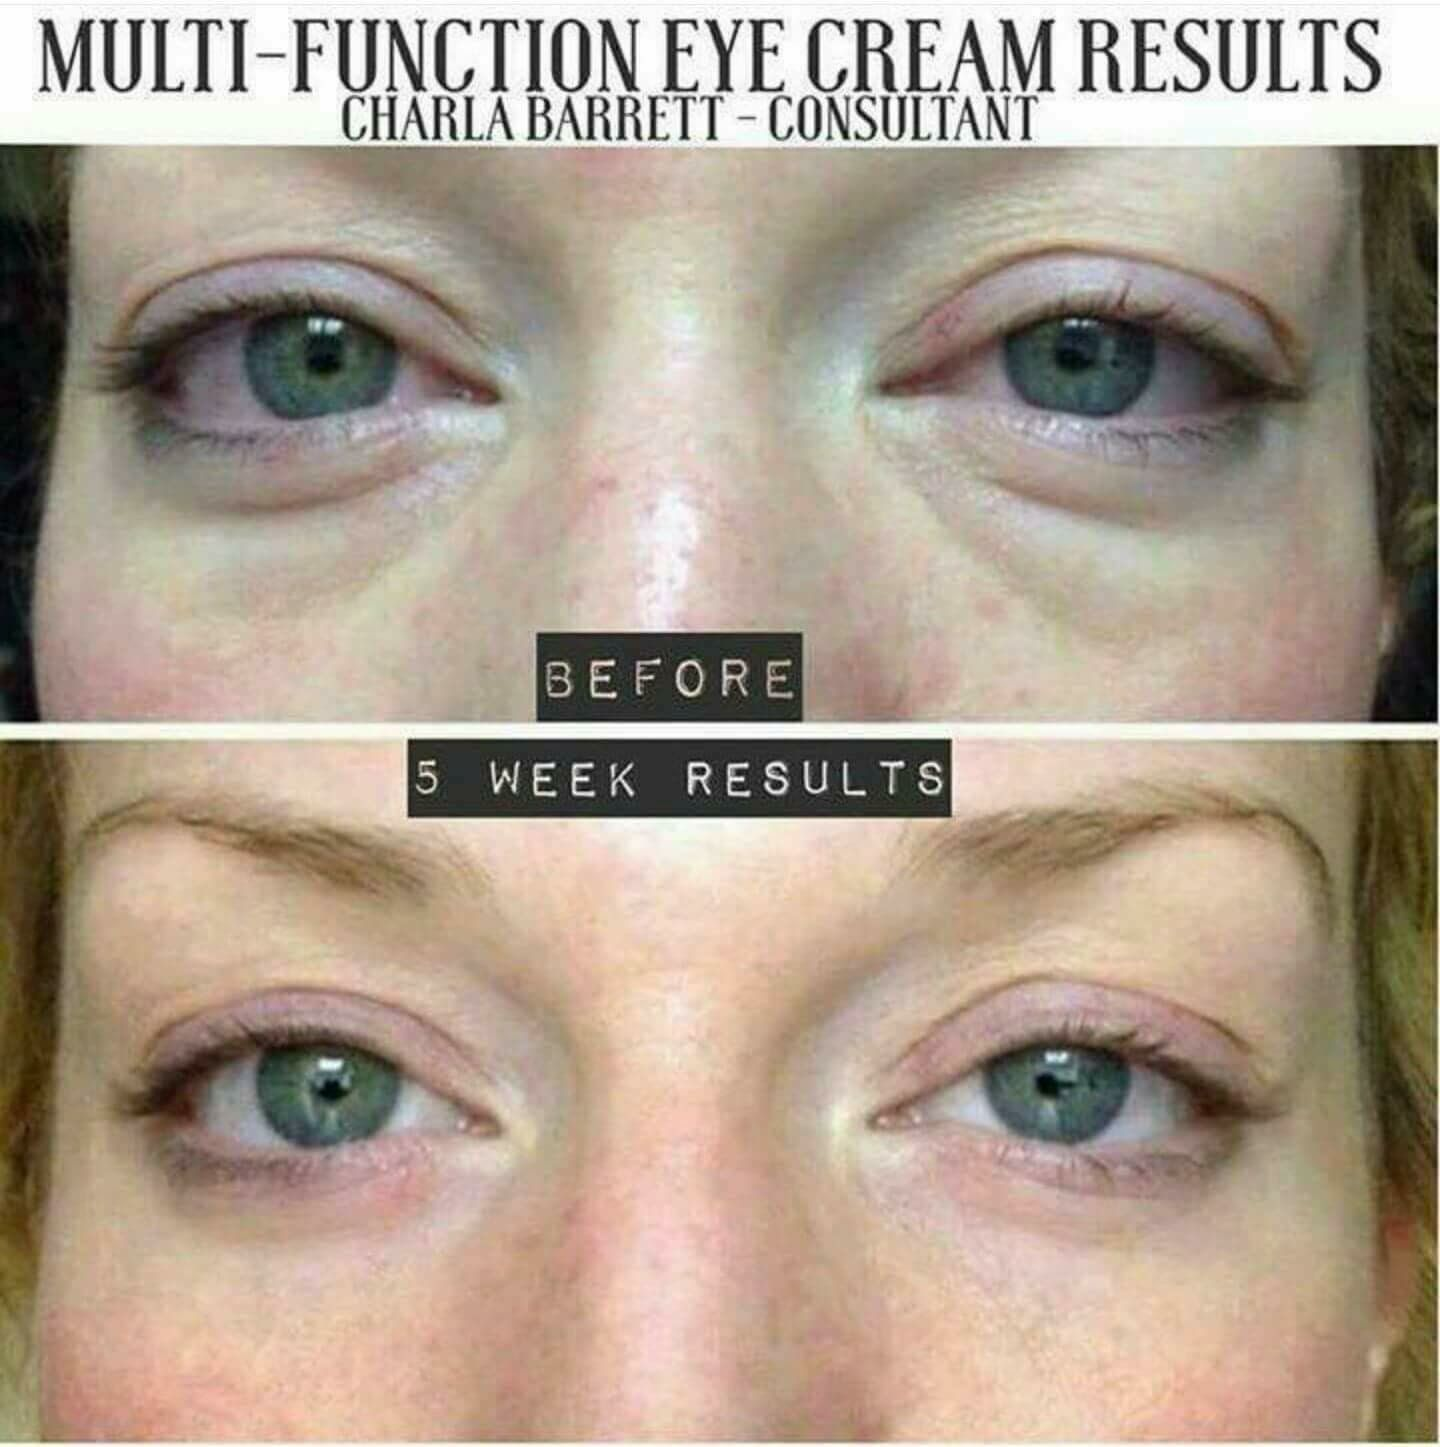 Cream Eye Fields Multifunction Multifunction Eye Creams